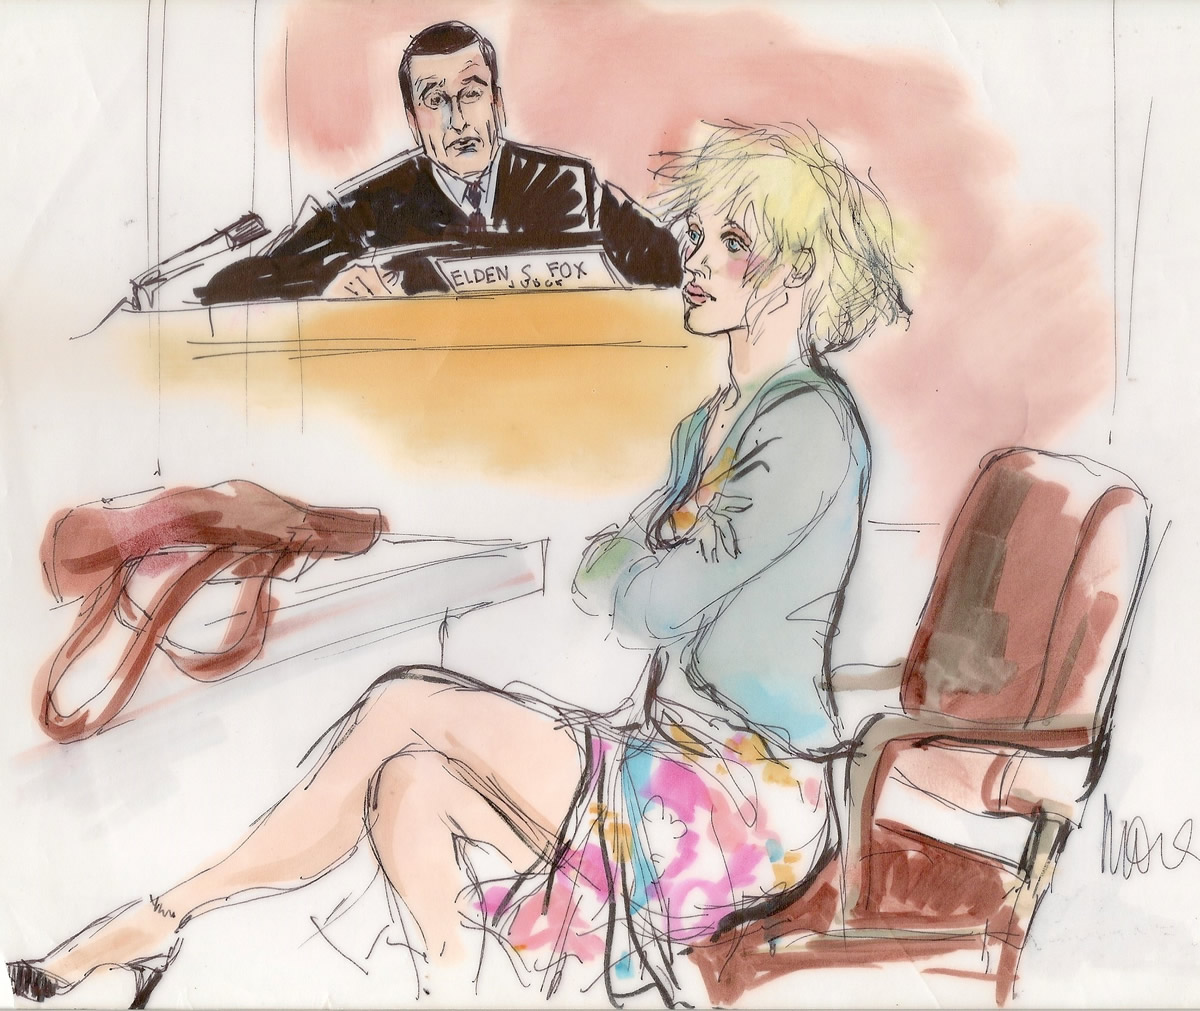 Courtney Love Drug Trial Courtroom Illustration